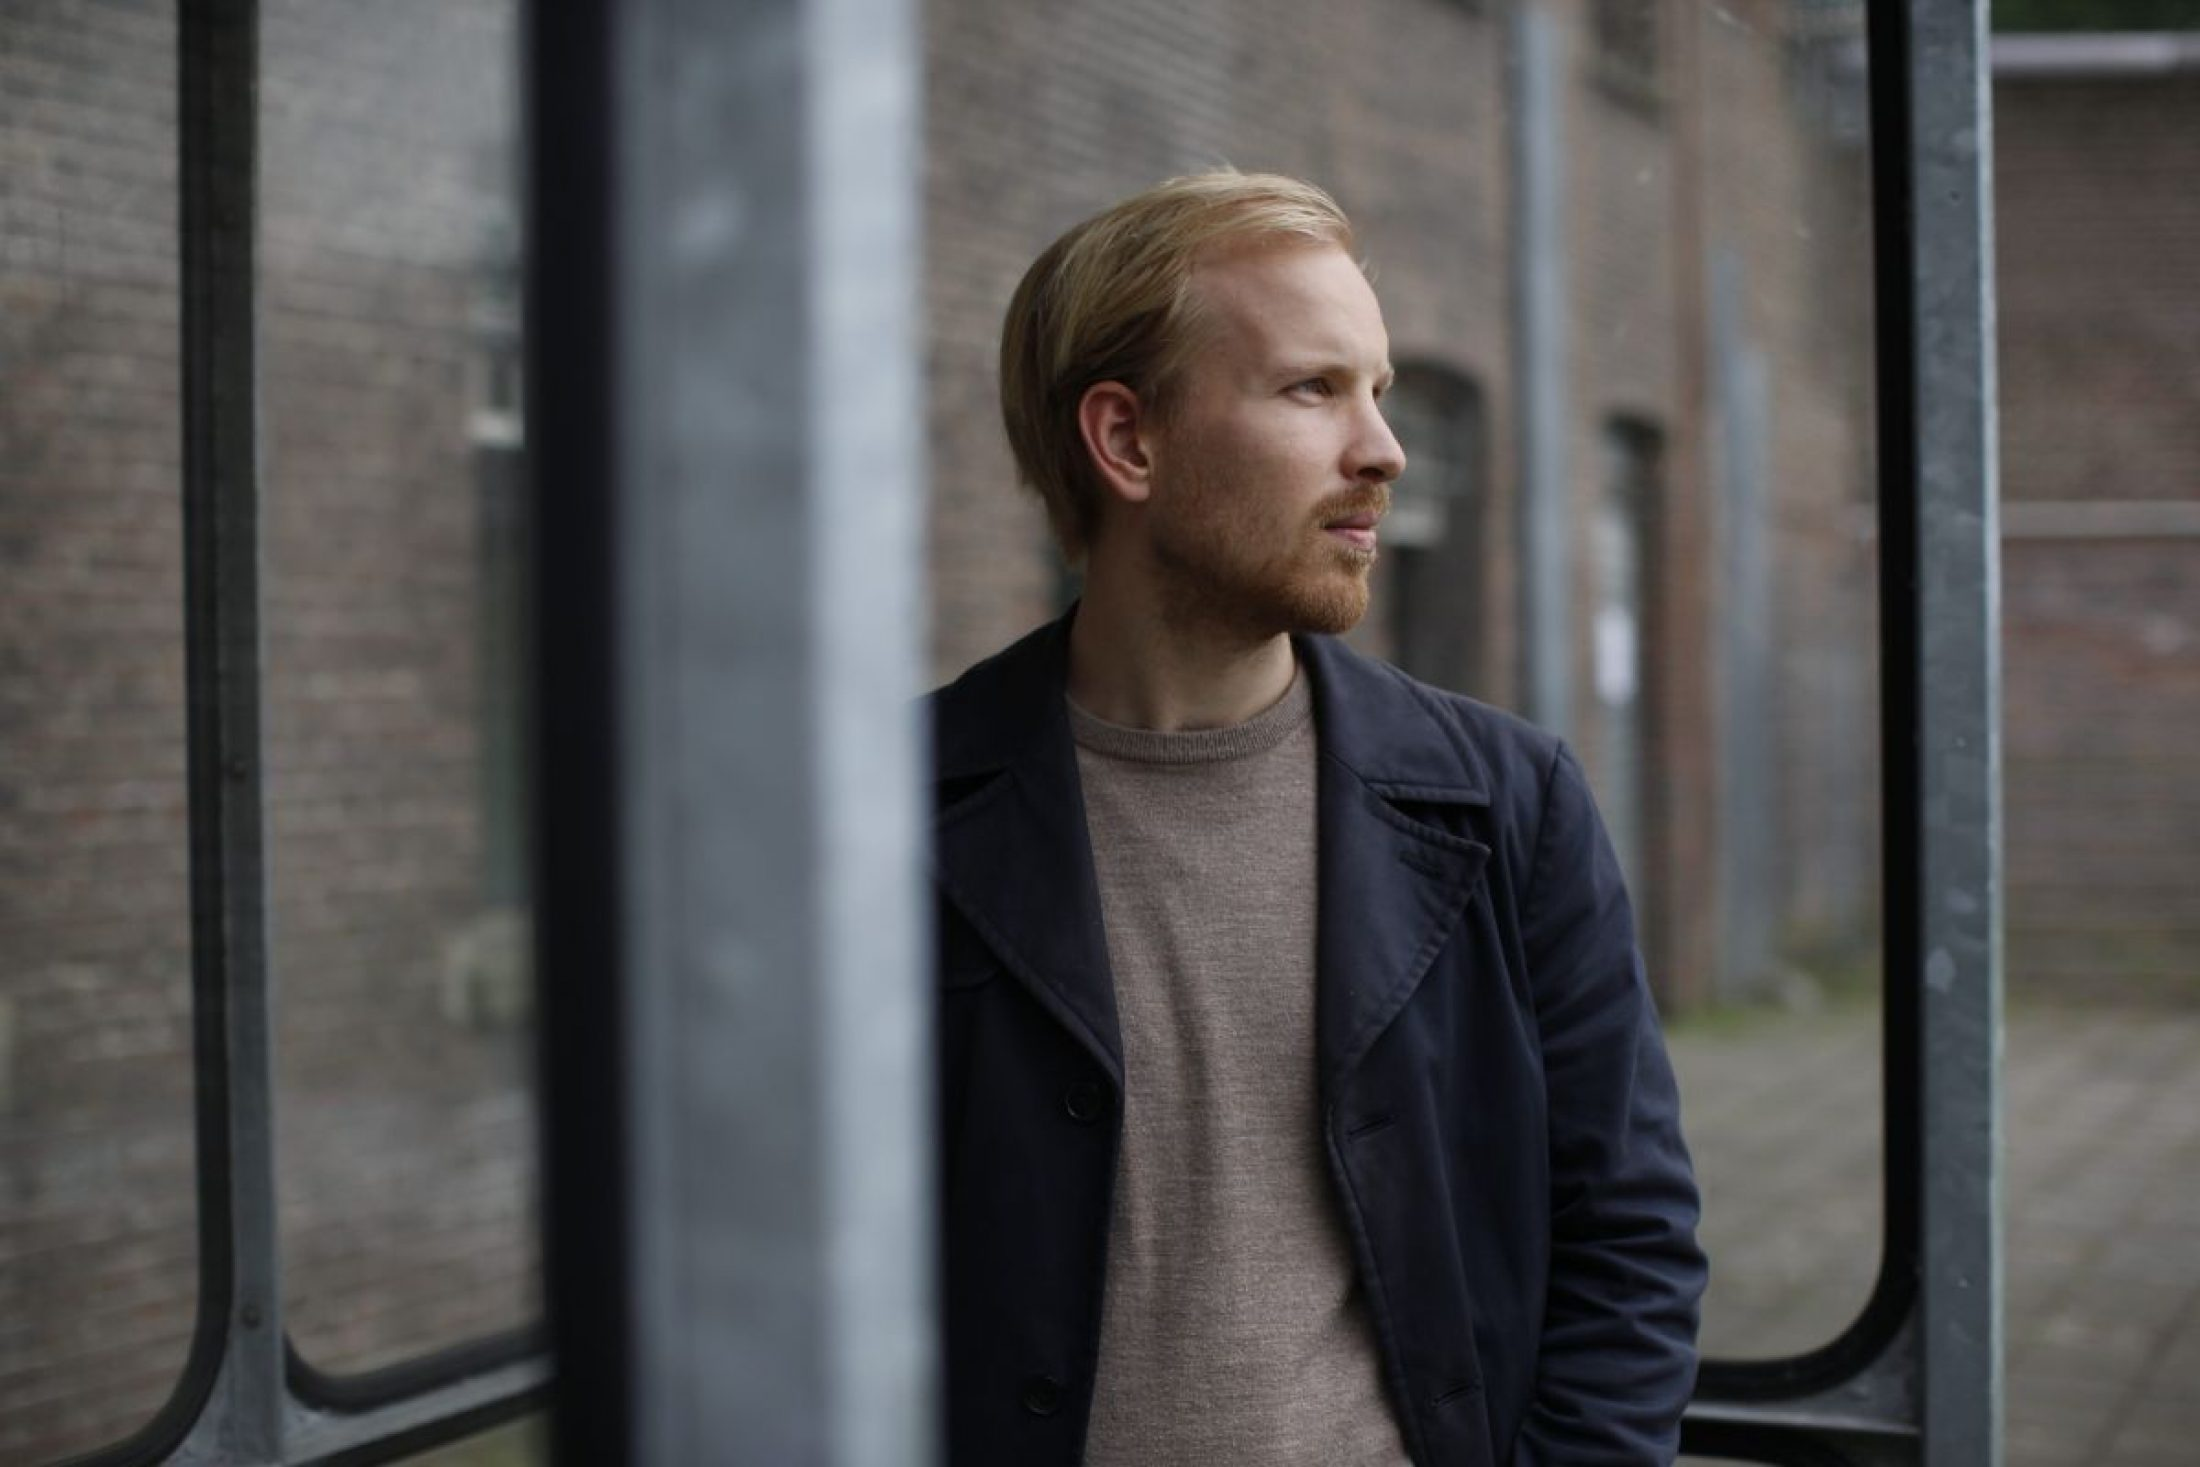 'Cynicism is out and hope is in,' says Rutger Bregman